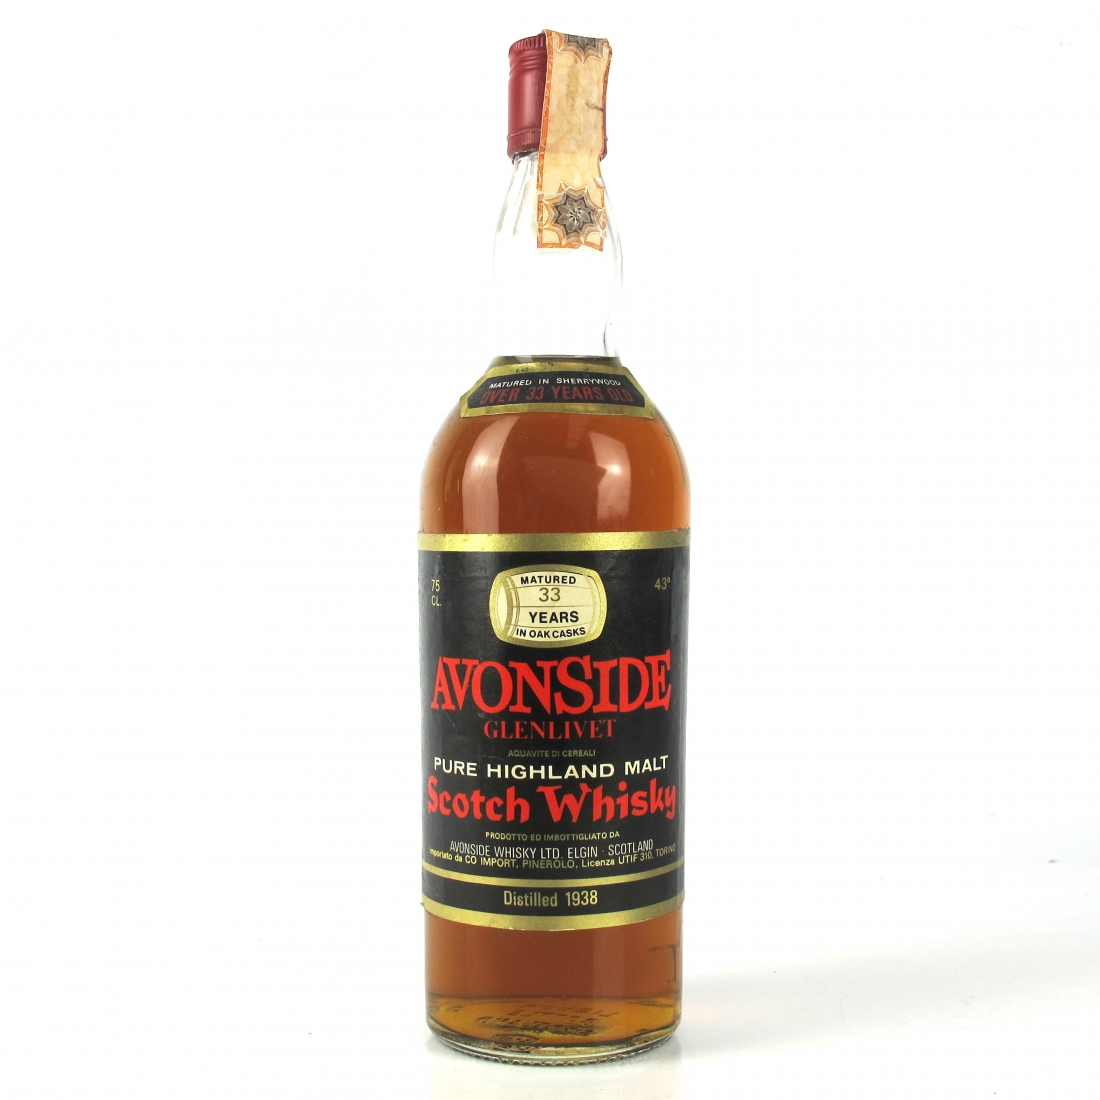 Avonside 1938 Gordon and MacPhail 33 Year Old / Pinerolo